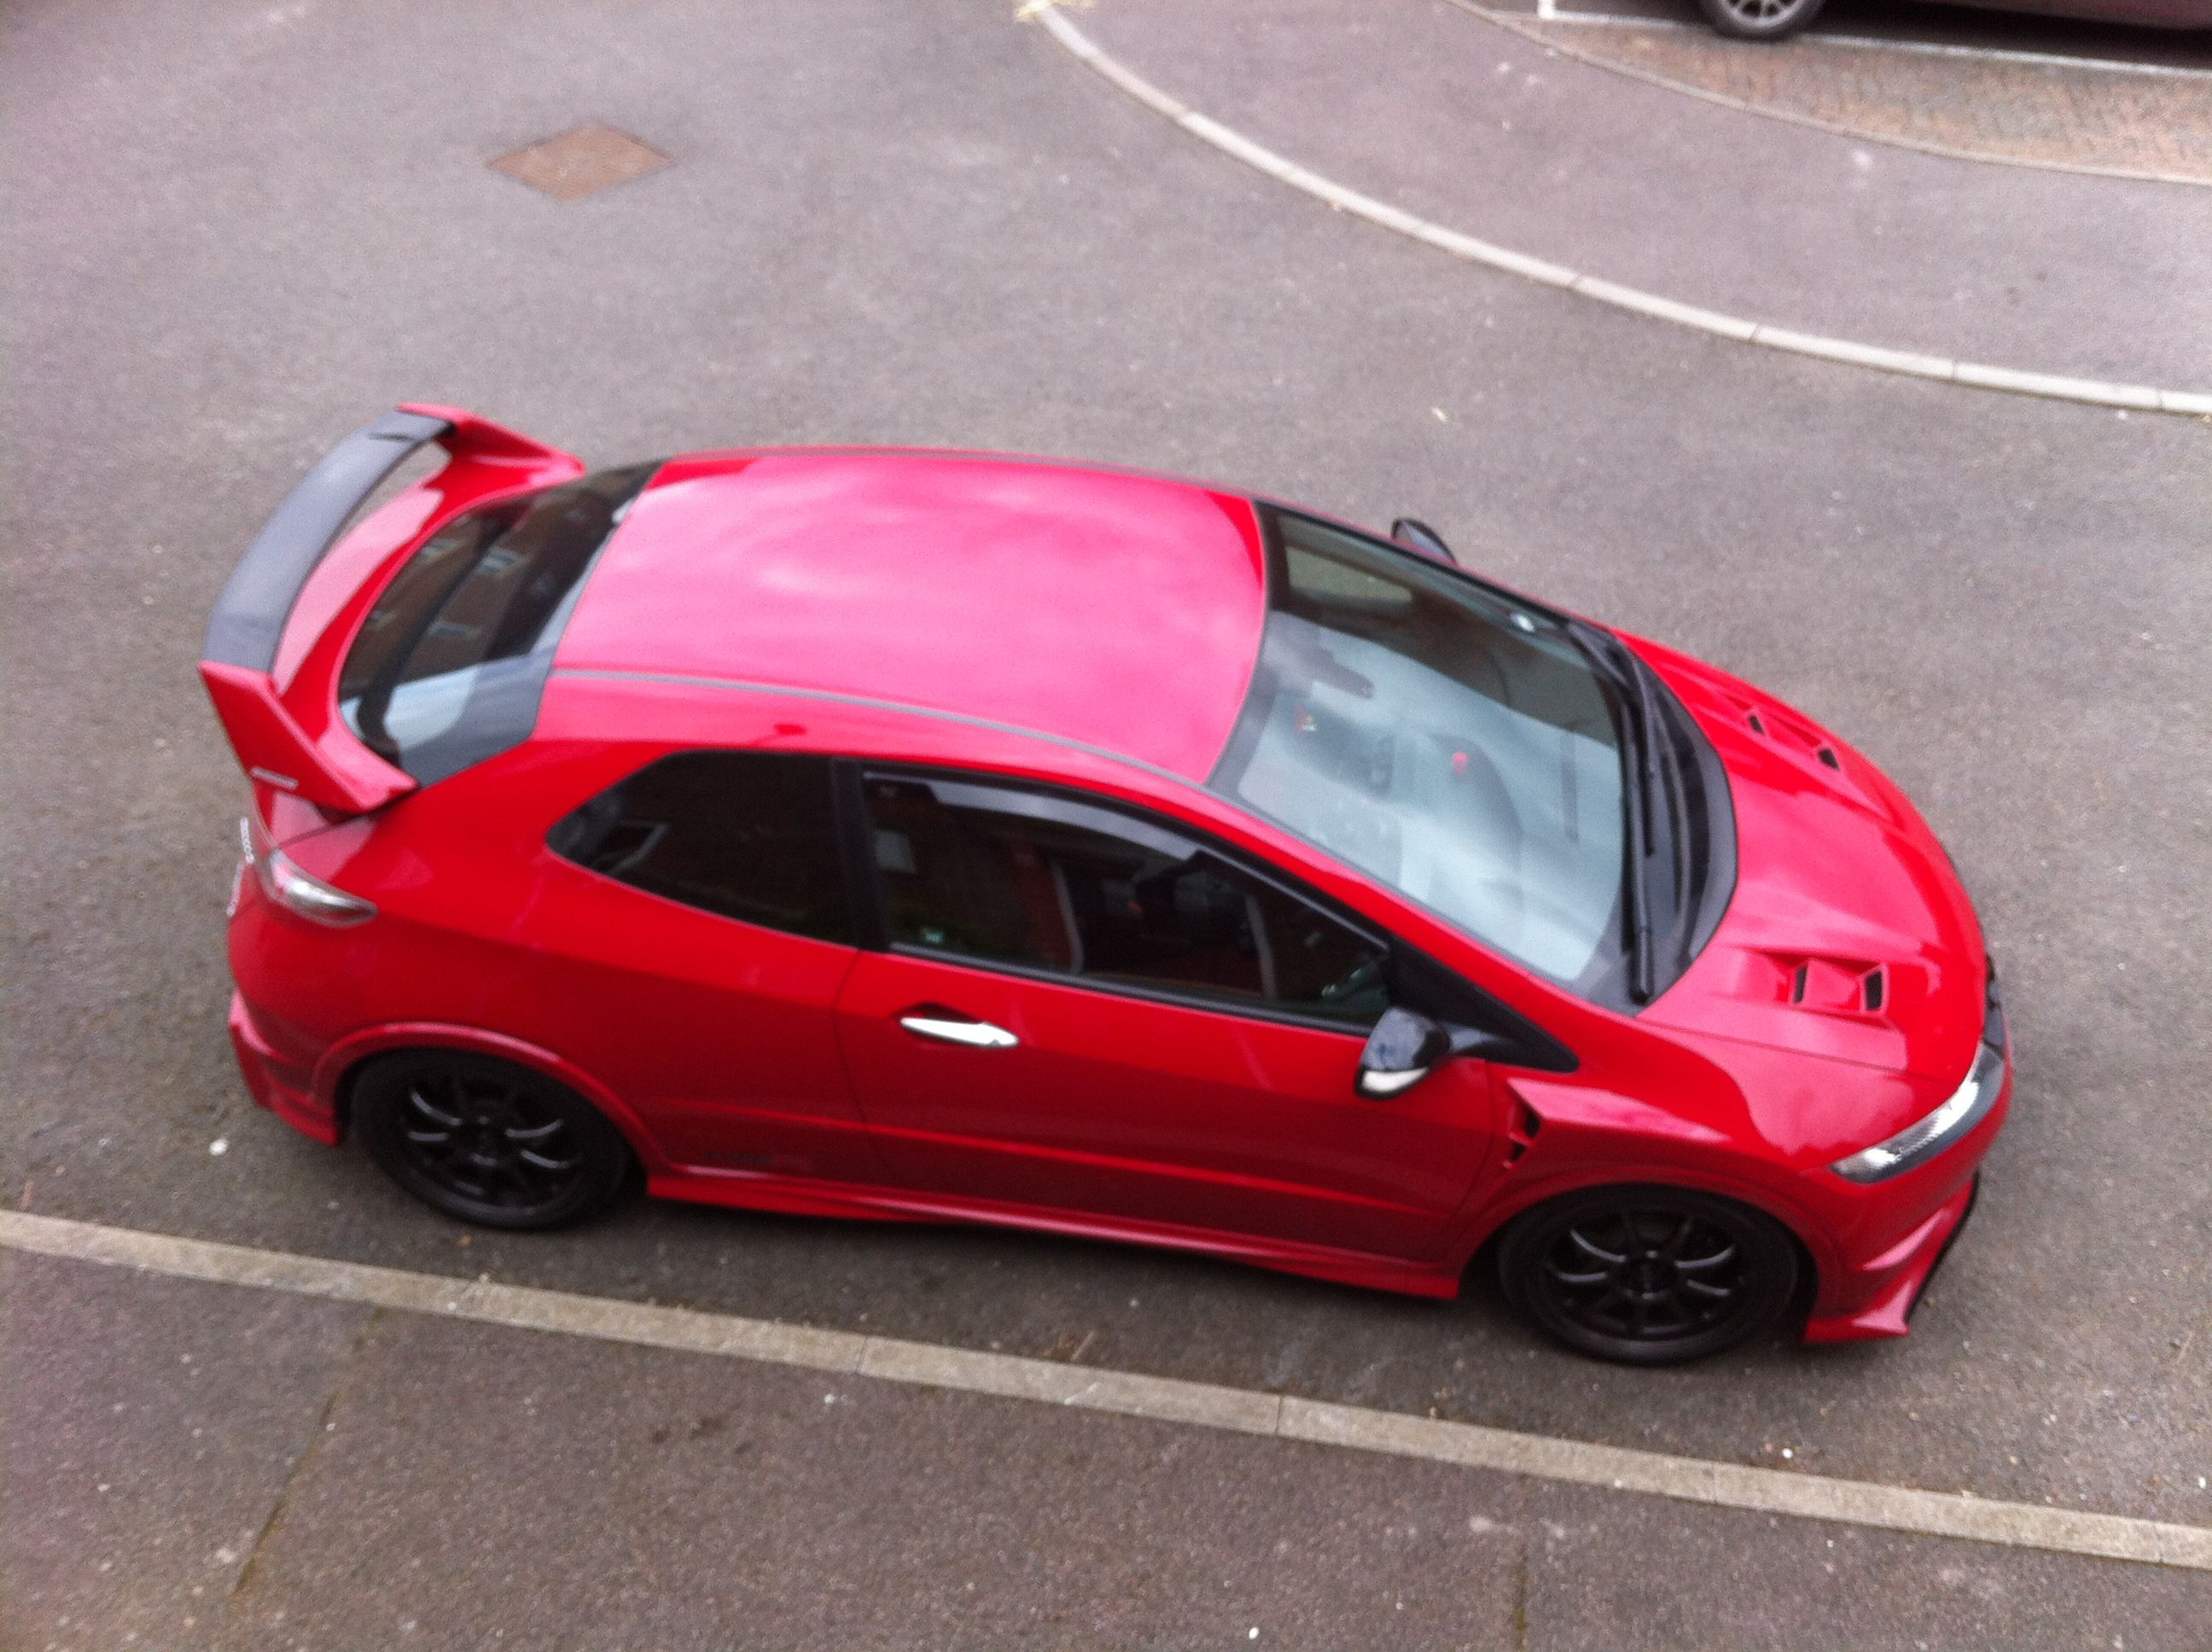 Honda civic type r 2015 roof see more my fn2 with aero fenders and aero kit frp vented bonnet